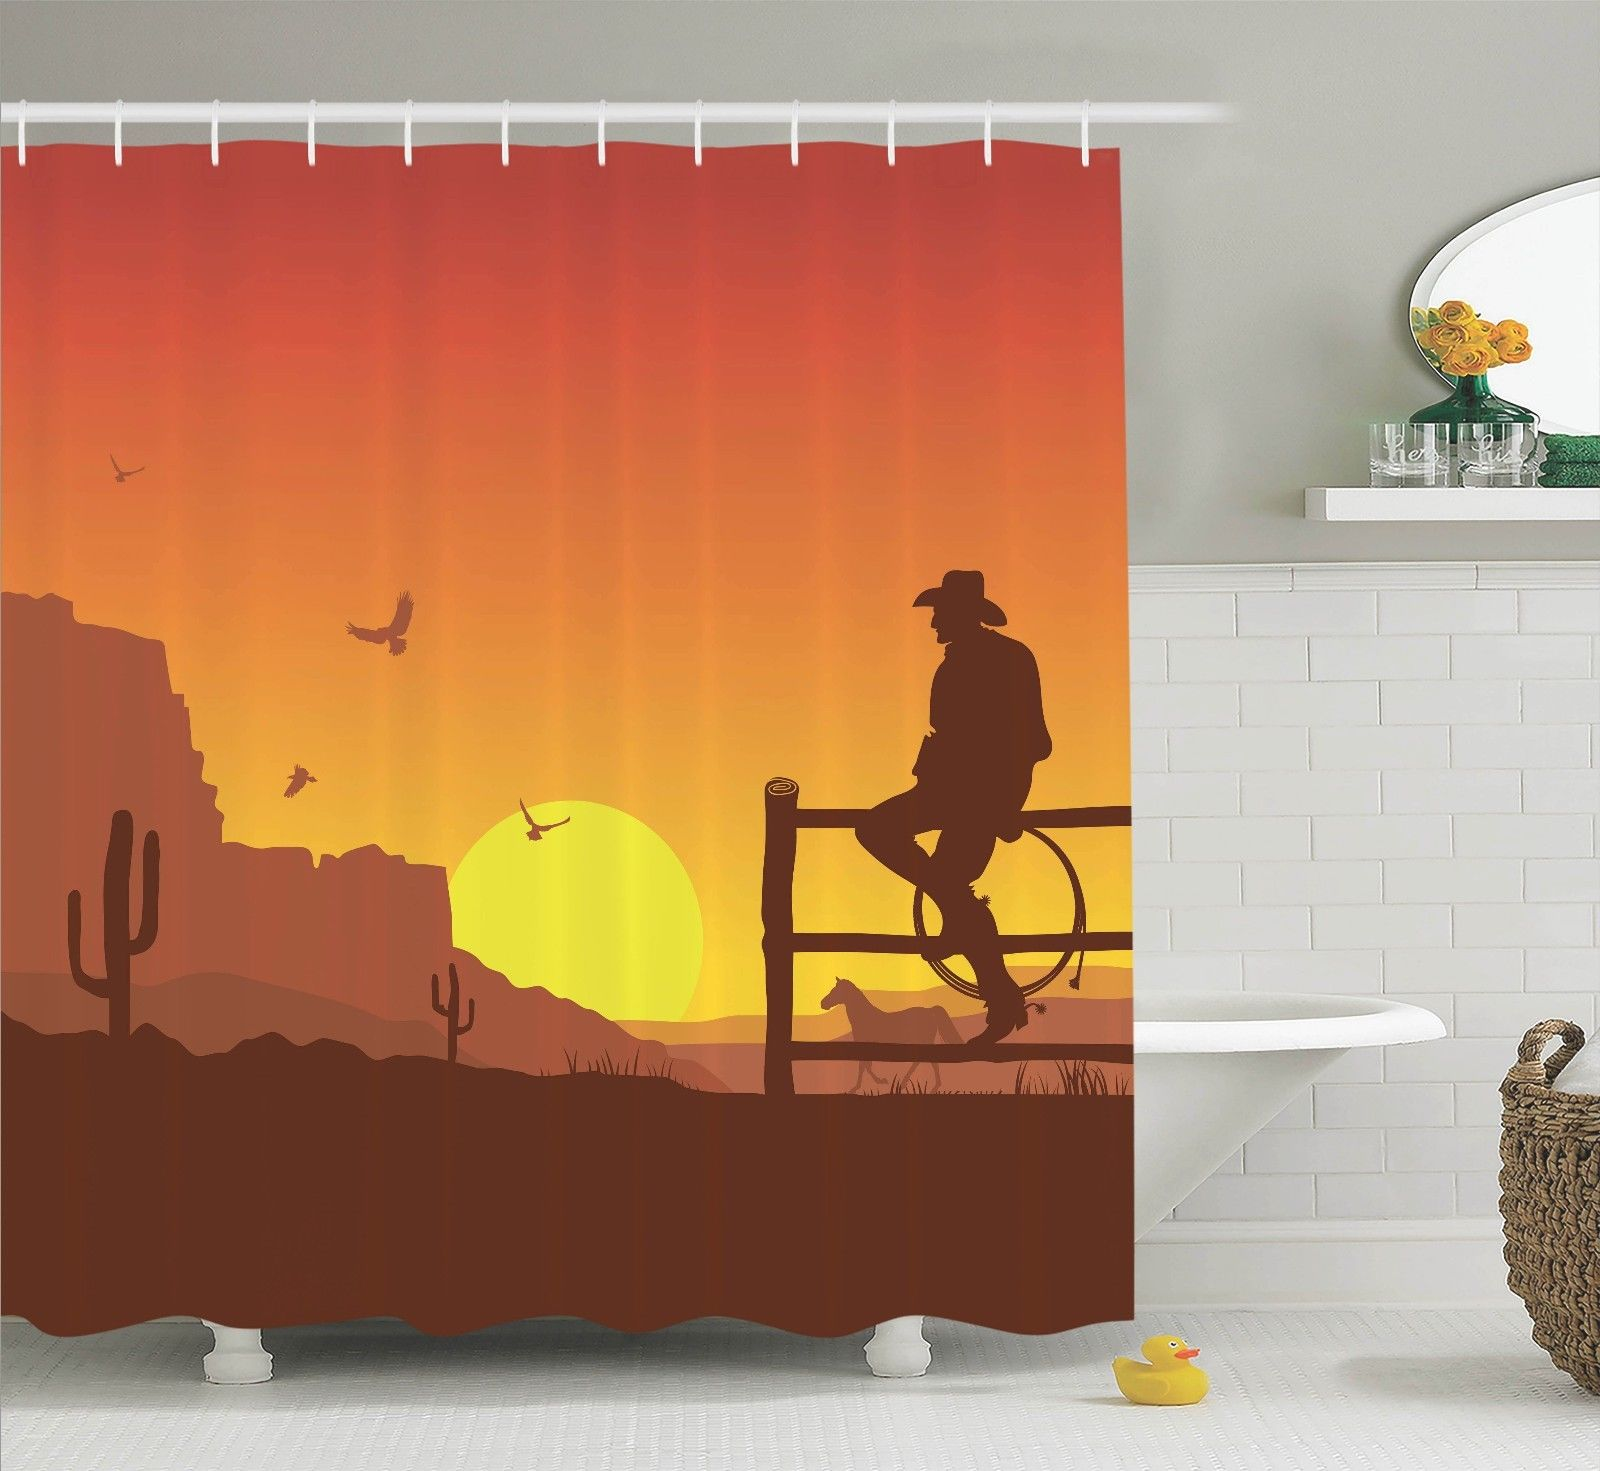 Western Decor Silhouette Of Cowboy In Wild West Sunset Landscape American Culture Image Artsy Print, Bathroom Accessories, 69W X 84L Inches Extra Long, By Ambesonne